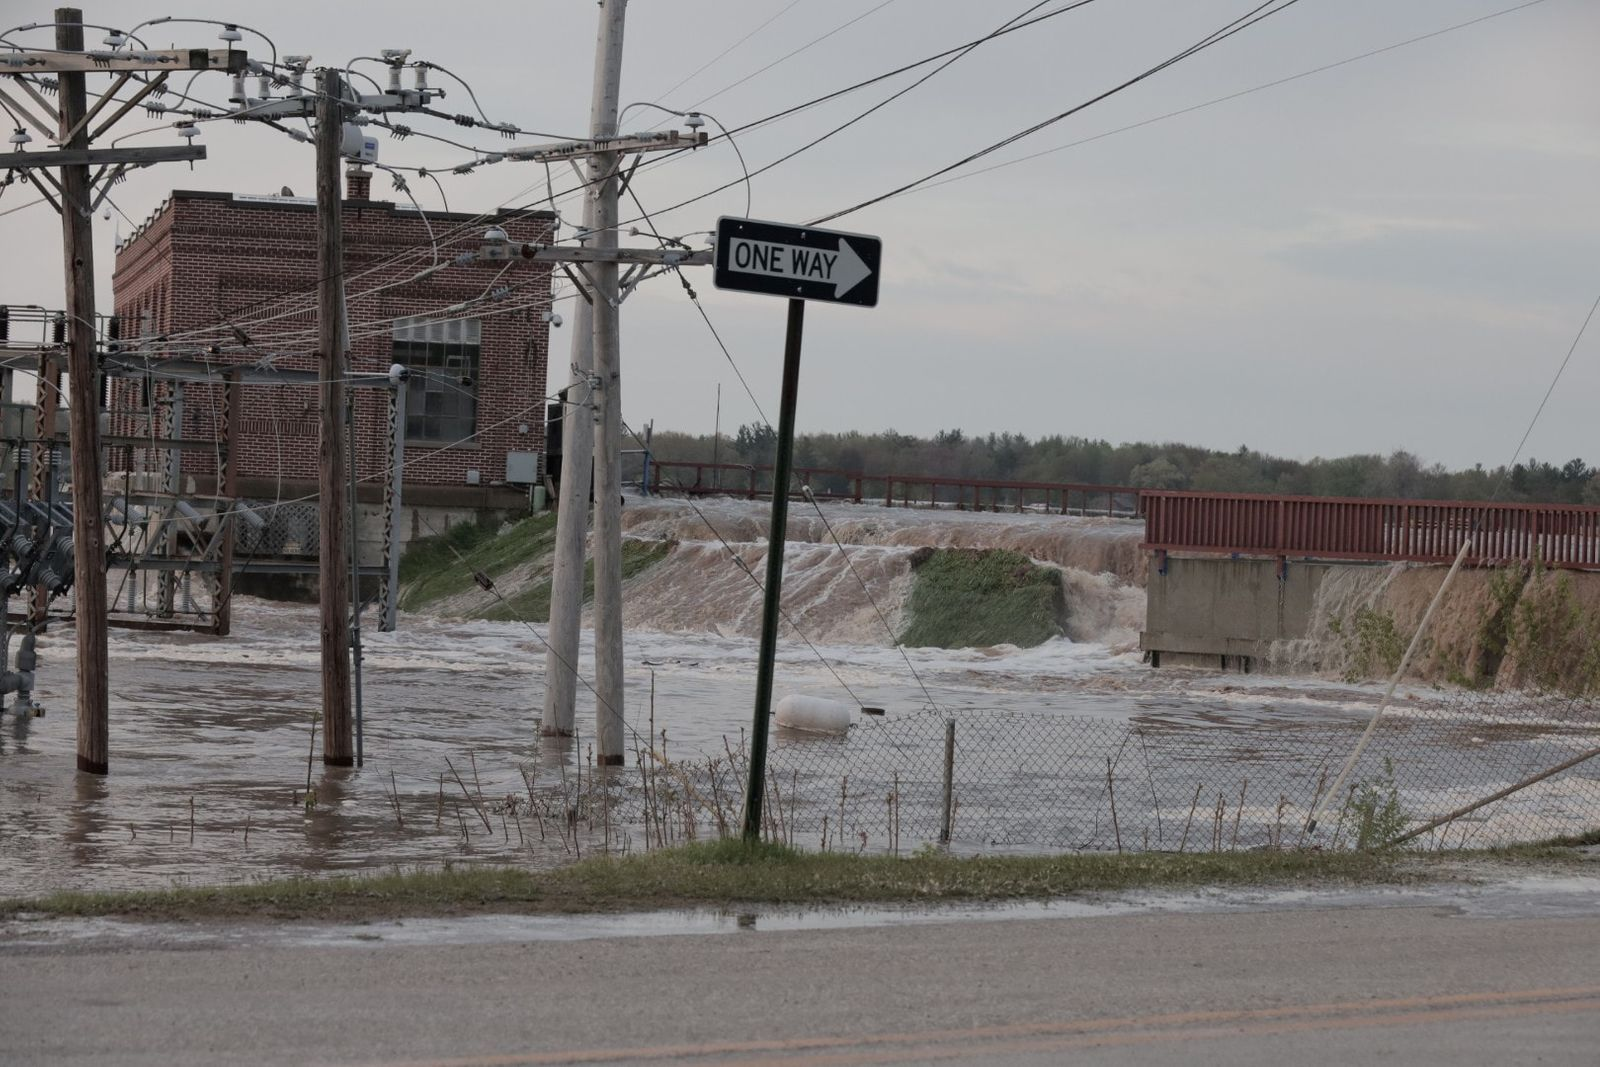 Floodwaters overflow at Sanford Dam, Michigan, U.S. in this May 19, 2020 picture obtained from social media.